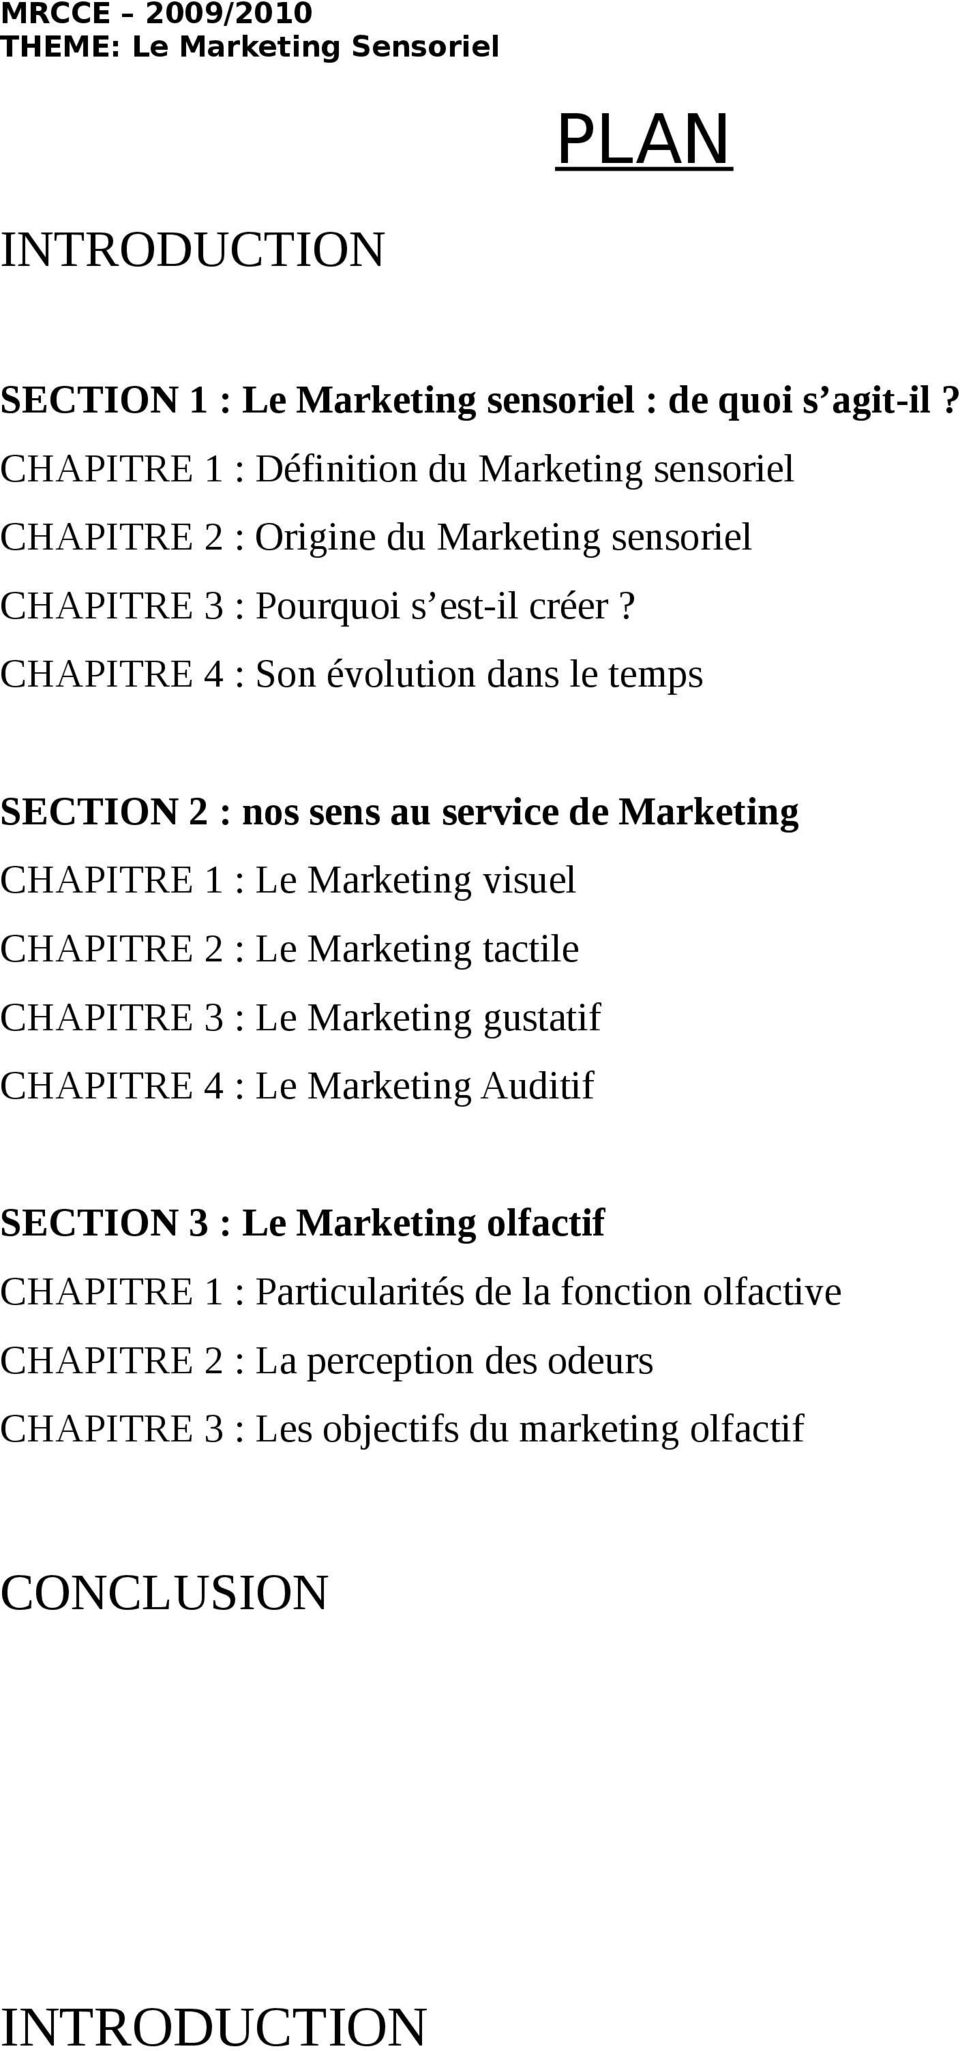 CHAPITRE 4 : Son évolution dans le temps SECTION 2 : nos sens au service de Marketing CHAPITRE 1 : Le Marketing visuel CHAPITRE 2 : Le Marketing tactile